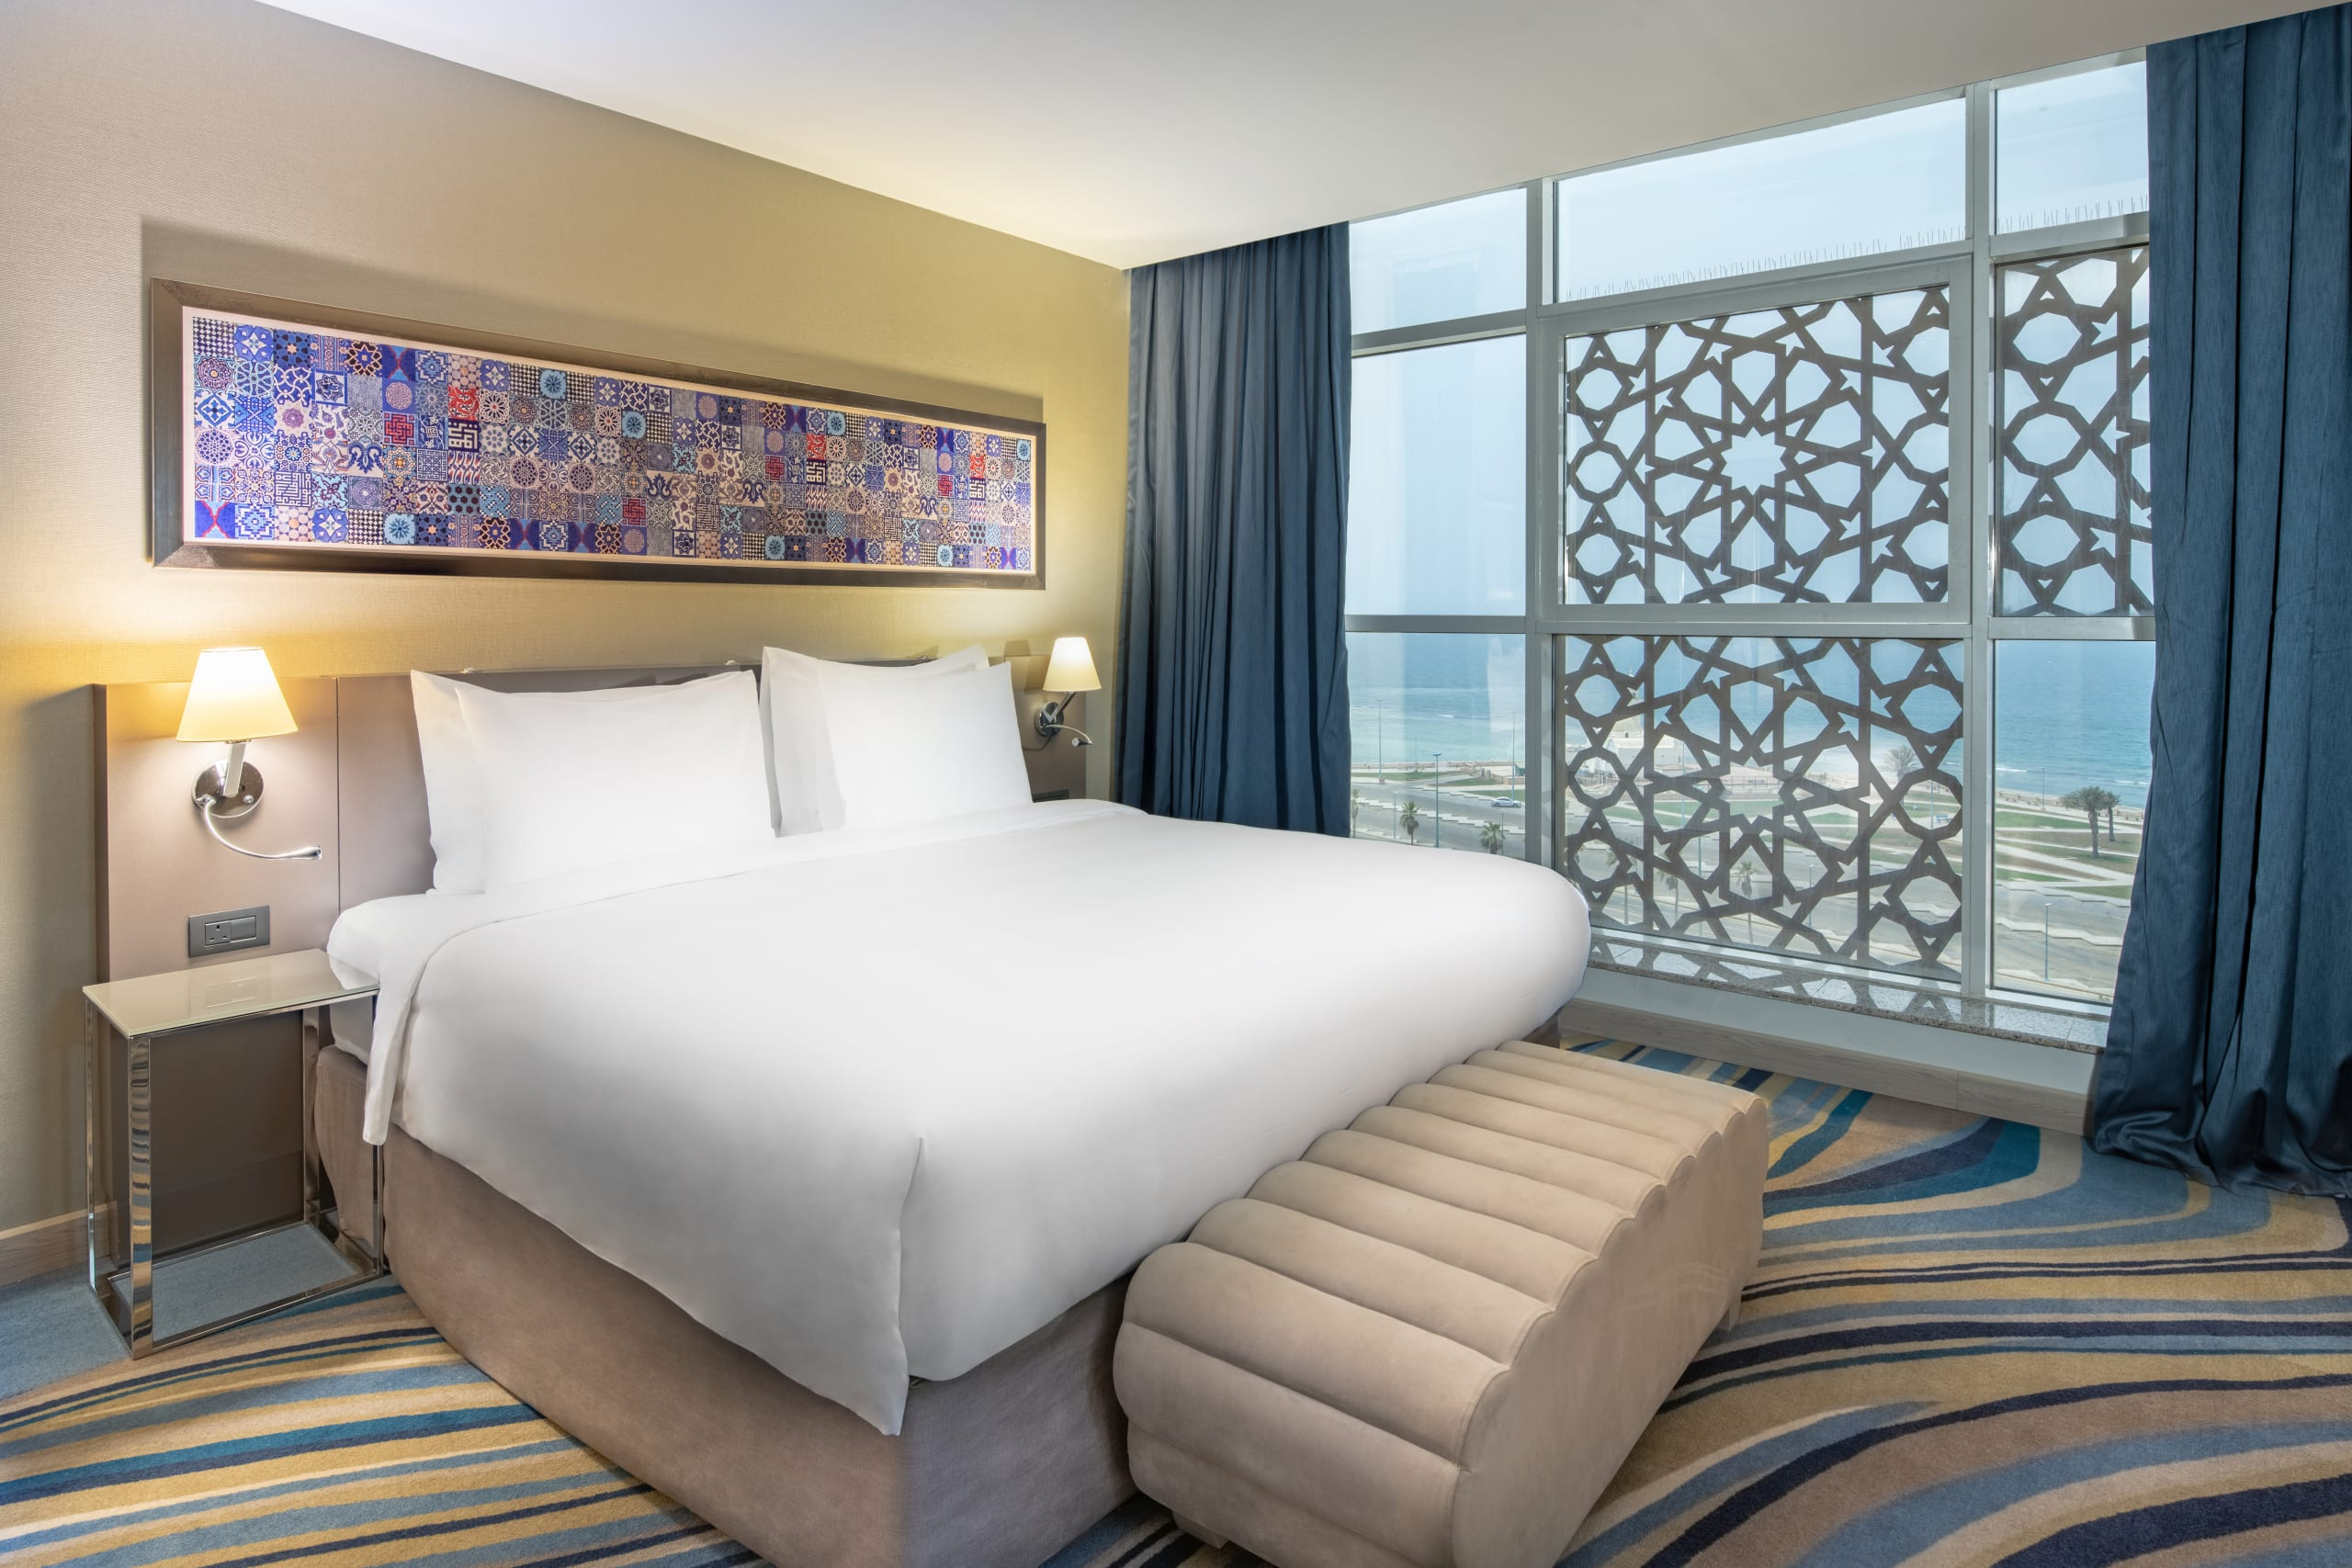 Radisson Blu Across the UAE - Find Your Hotel Haven While You Explore the Emirates